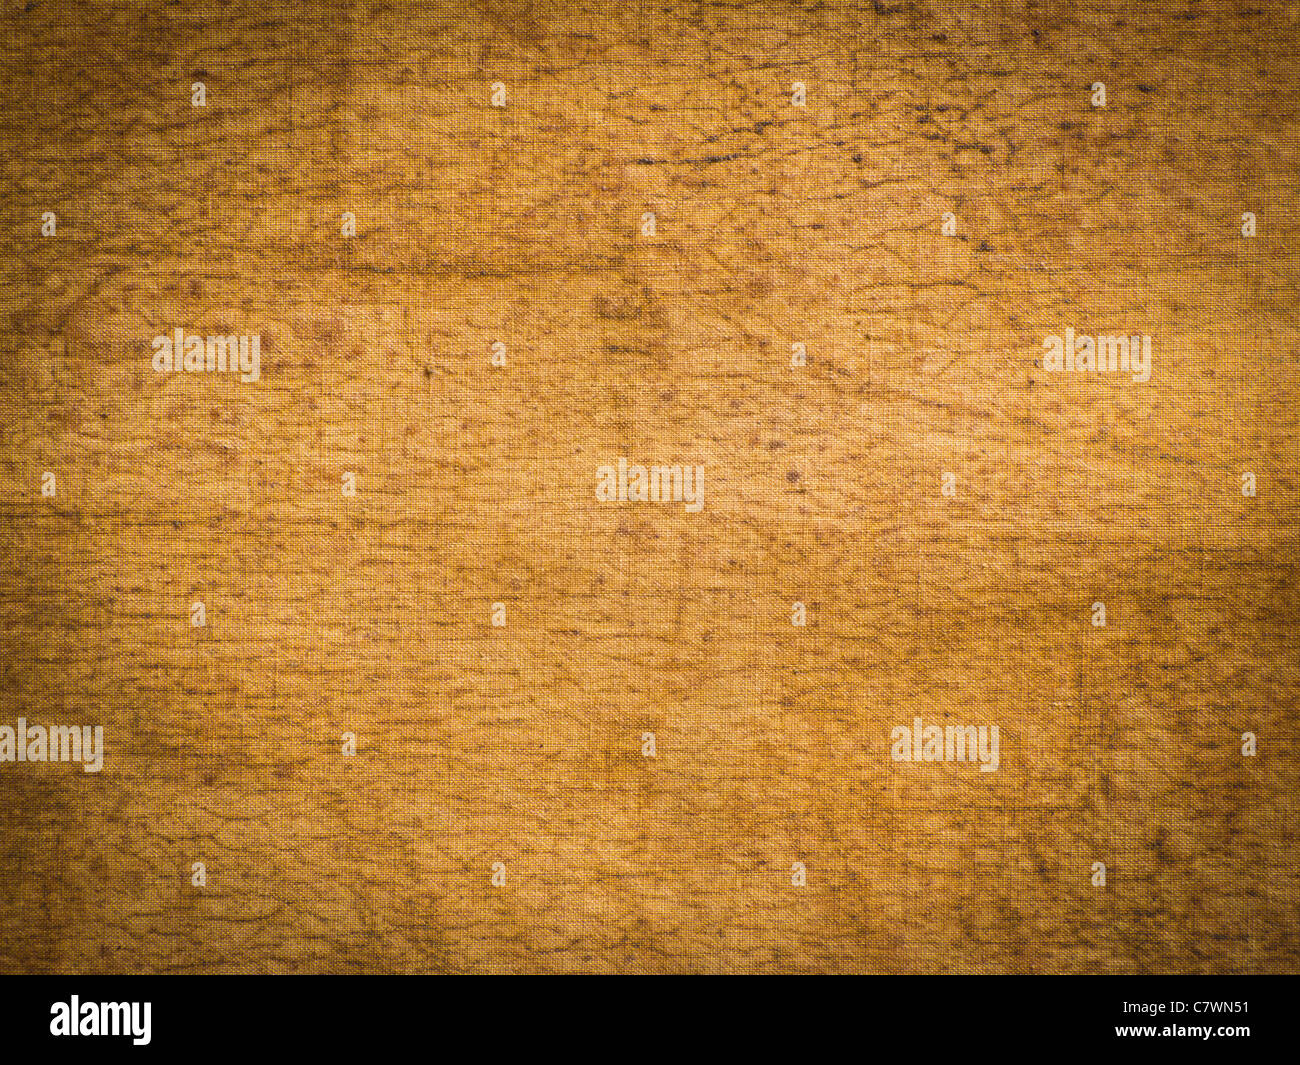 Canvas Grungy Texture - Stock Image